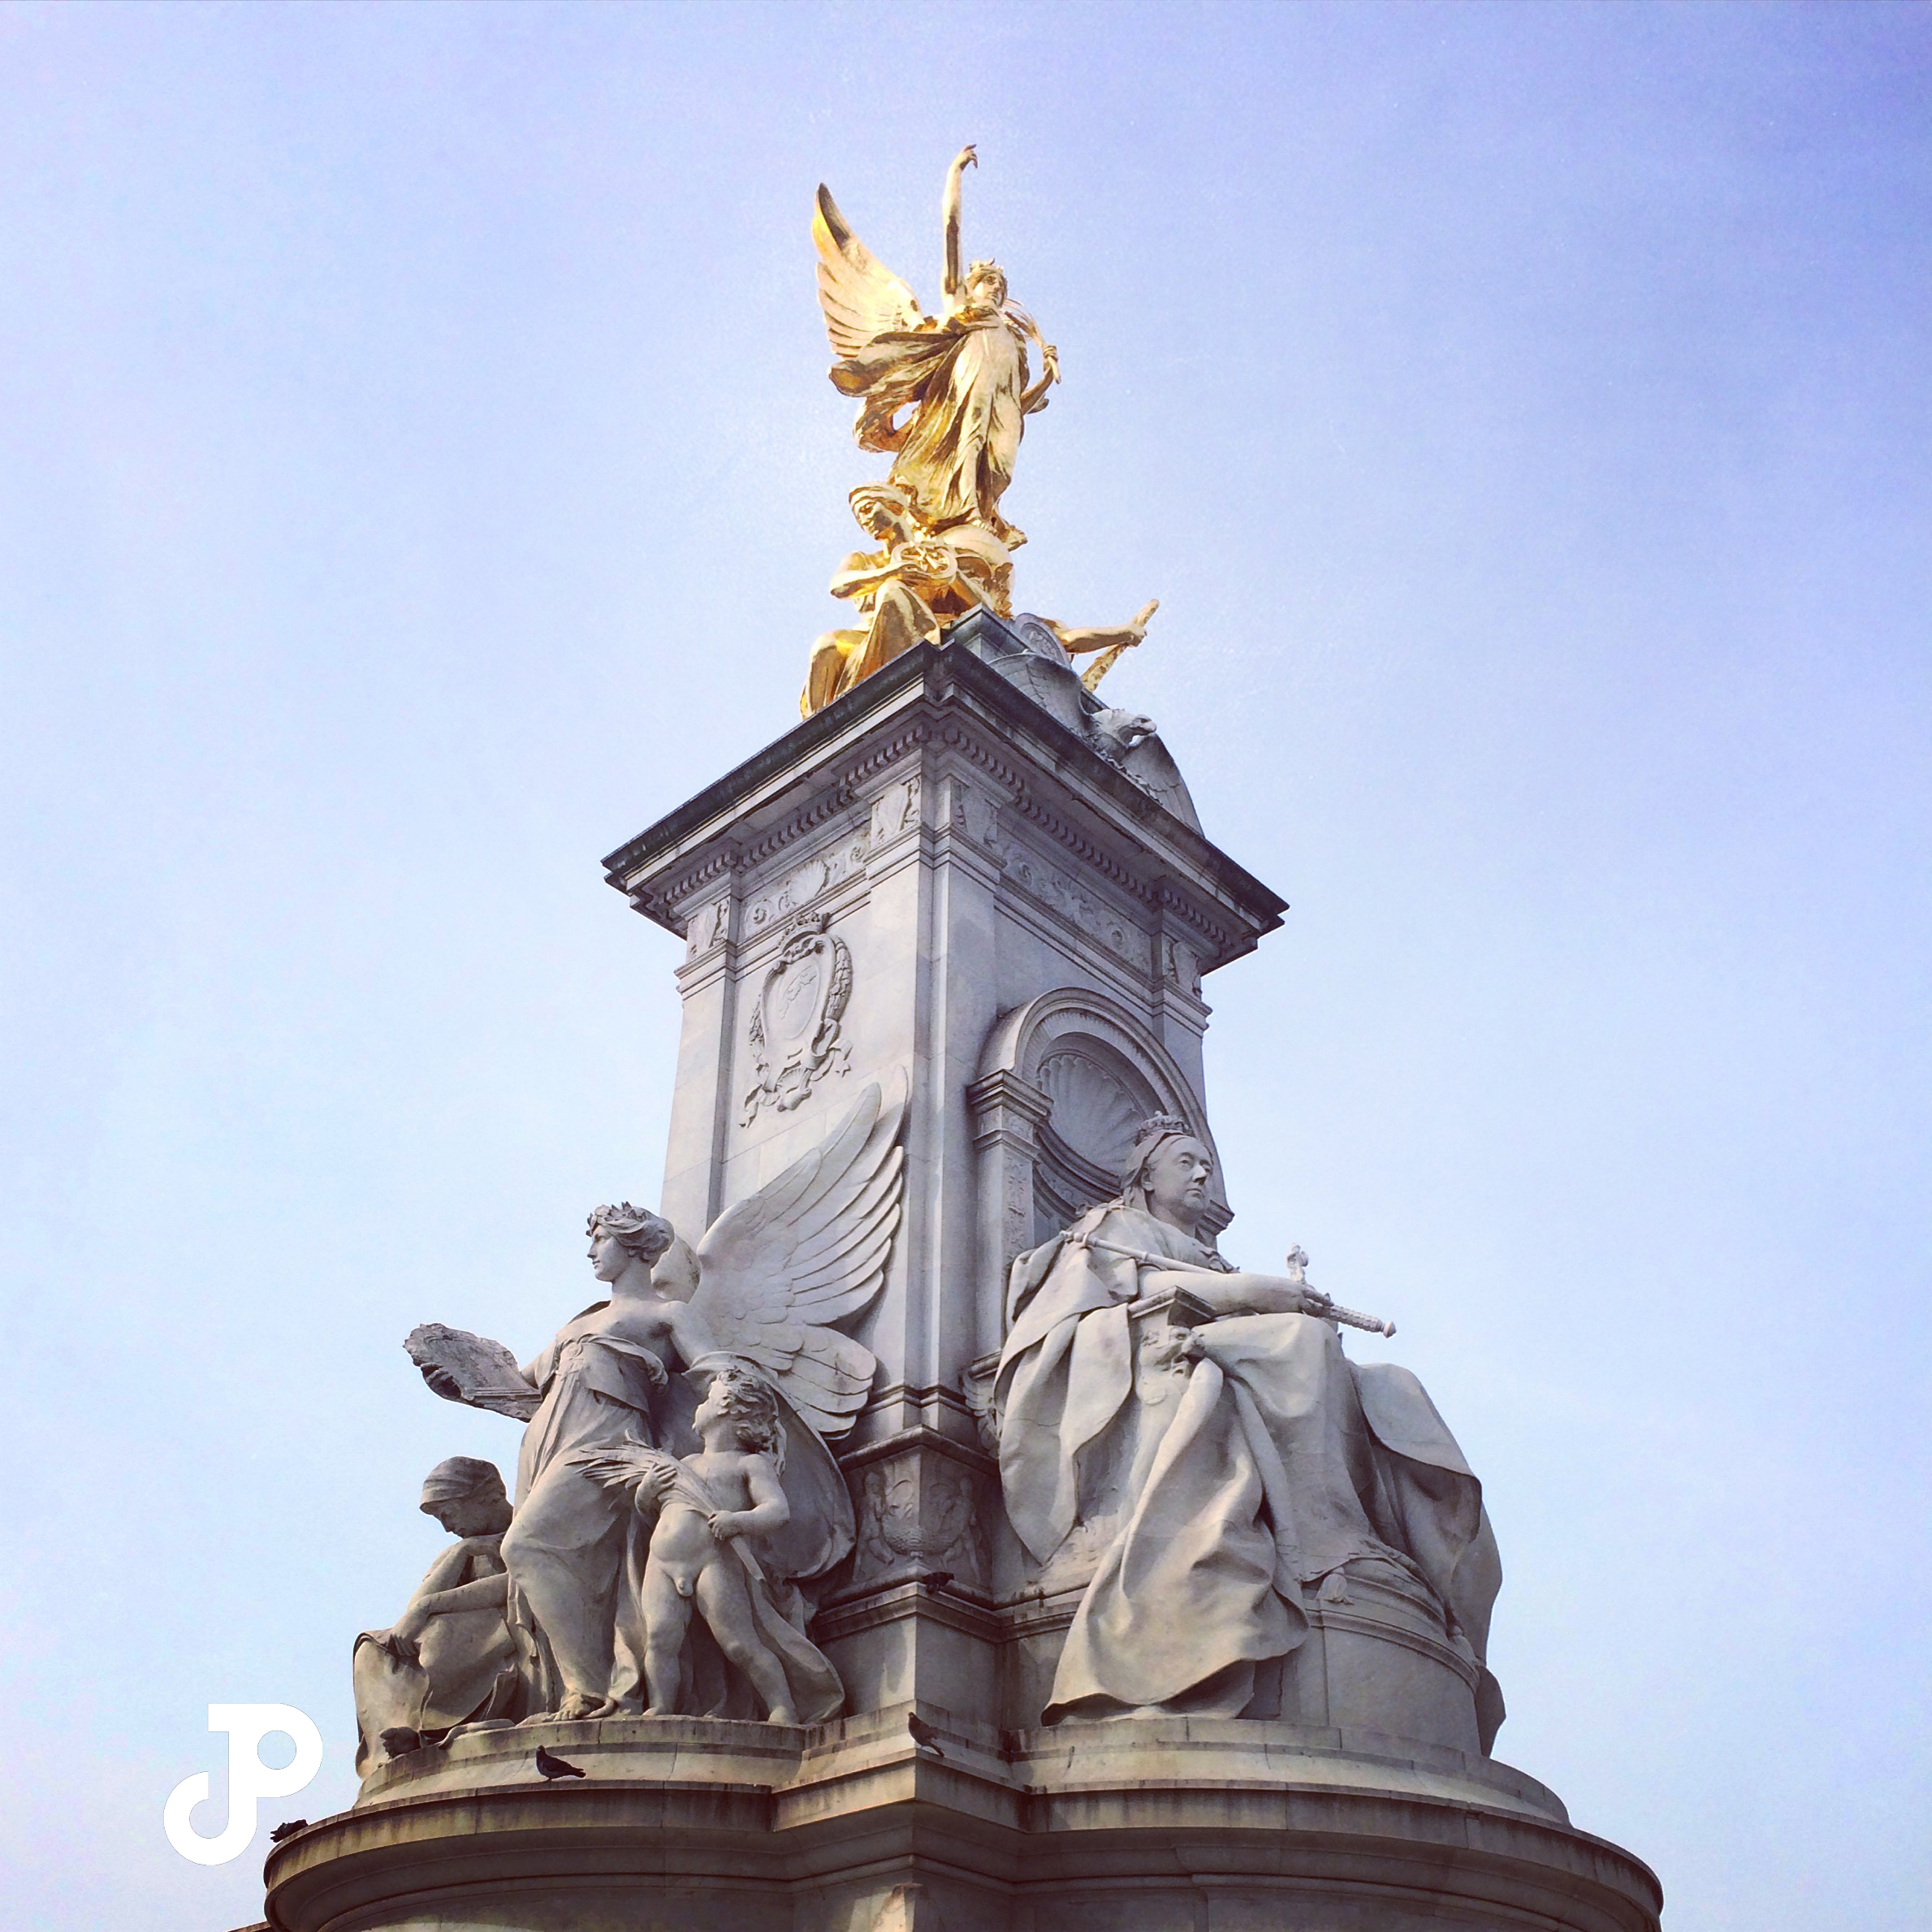 the Queen Victoria Memorial in London